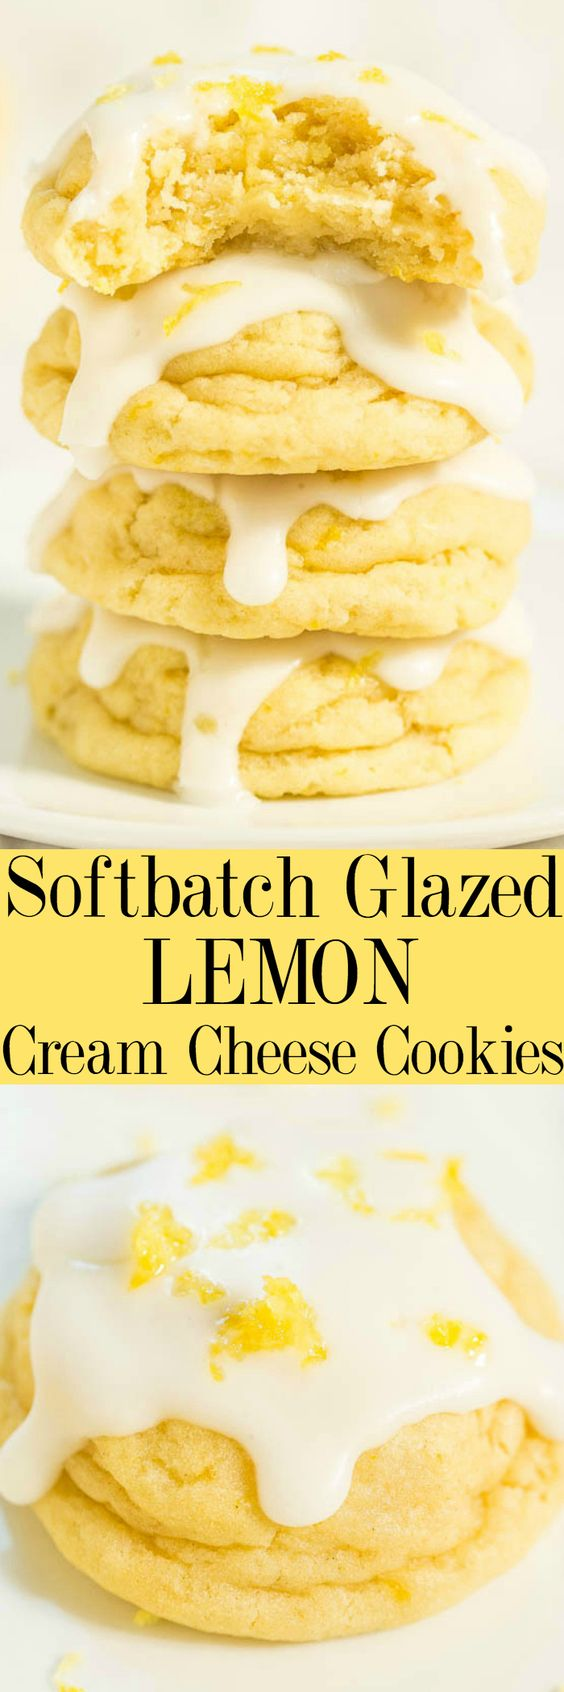 Softbatch Glazed Lemon Cream Cheese Cookies Recipe via Averie Cooks - Big, bold lemon flavor packed into super soft cookies thanks to the cream cheese!! Tangy-sweet perfection! Lemon lovers are going to adore these easy cookies!! The BEST Easy Lemon Desserts and Treats Recipes - Perfect For Easter, Mother's Day Brunch, Bridal or Baby Showers and Pretty Spring and Summer Holiday Party Refreshments! #lemondesserts #lemonrecipes #easylemonrecipes #lemon #lemontreats #easterdesserts #mothersdaydesserts #springdesserts #holidaydesserts #summerdesserts